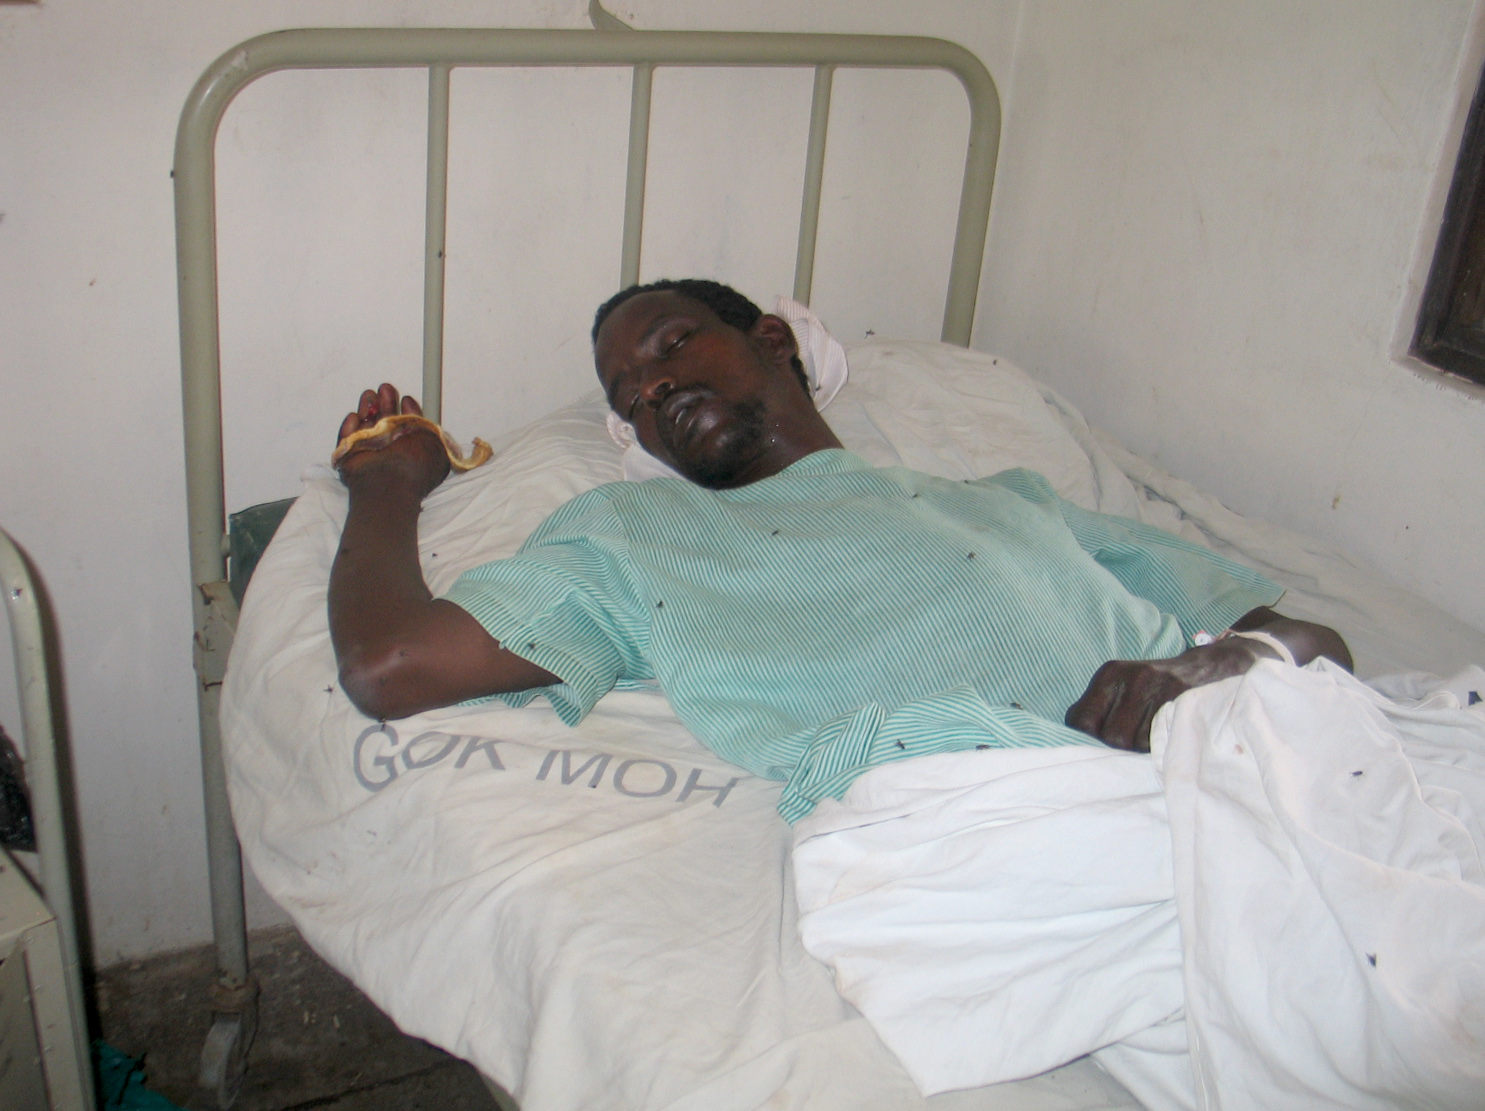 Mohammed Barre recovers at Isiolo district hospital after being injured during a raid at Gambella area, Isiolo